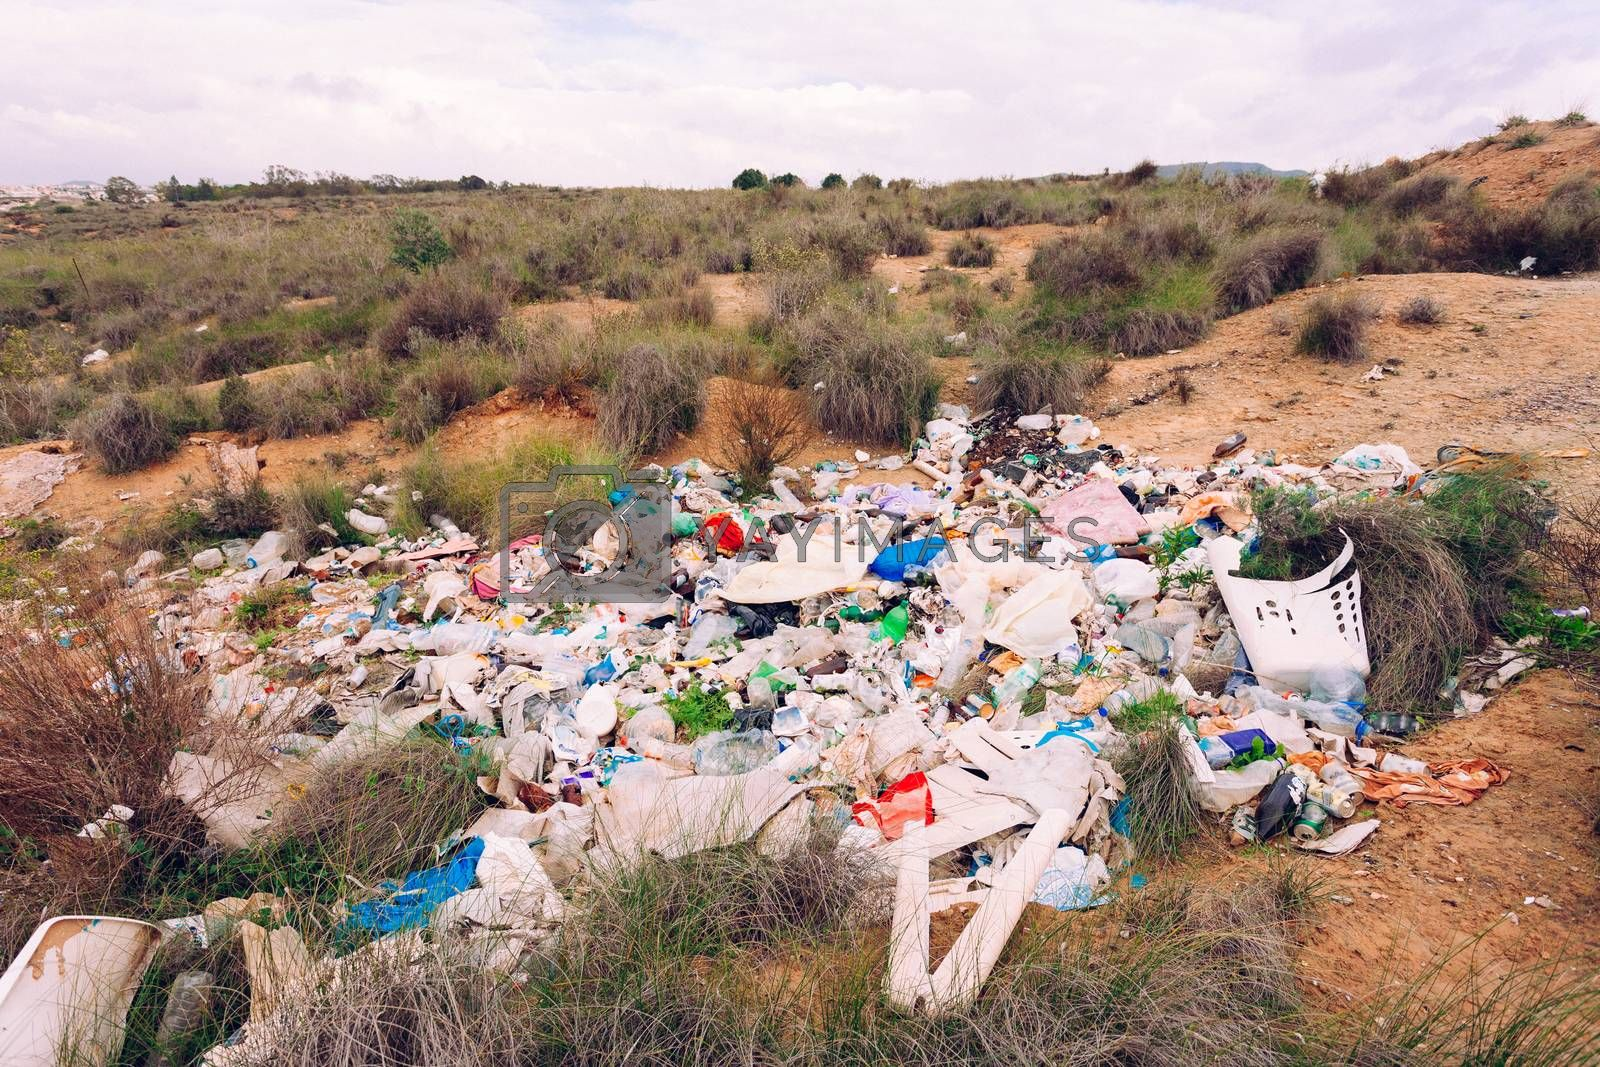 Illegal garbage disposal pollutes environment by PiLens